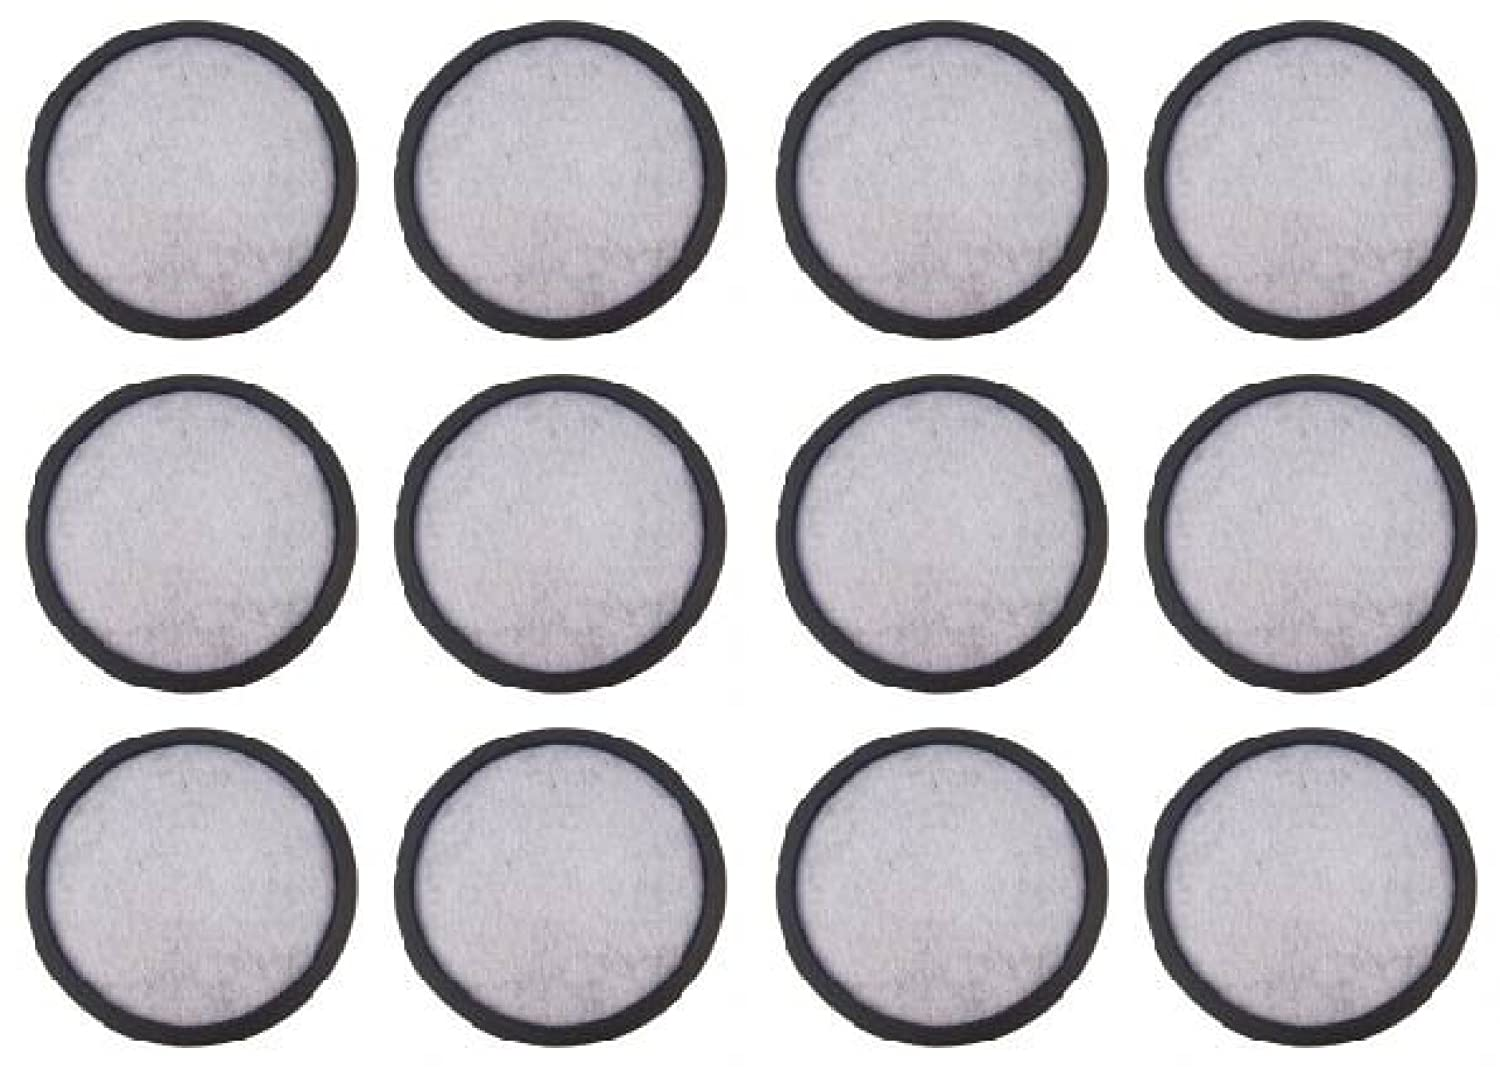 Water Filter for Mr Coffee 113035-001-000 WFF Coffeemaker, Set of 12